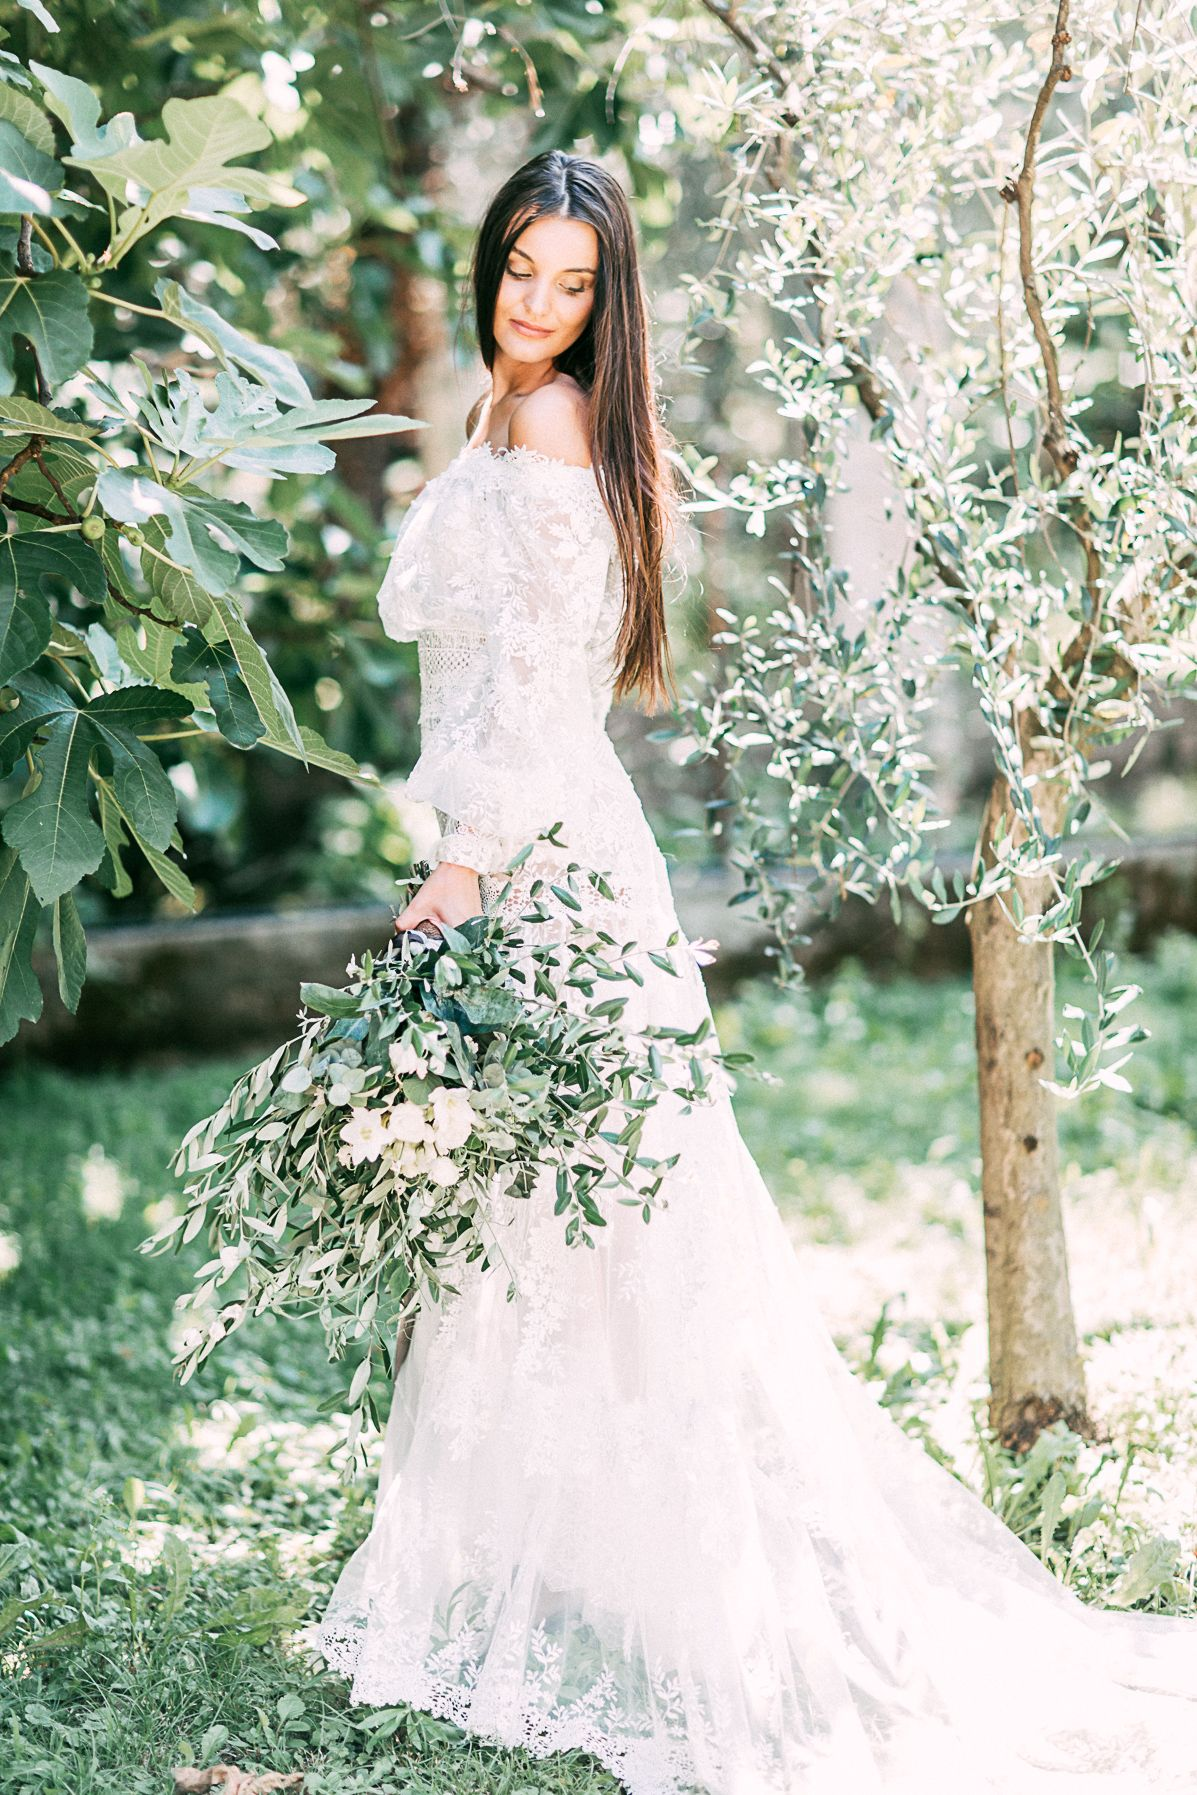 Yolan cris bridaldress photo octaviaplusklaus styling weddings by